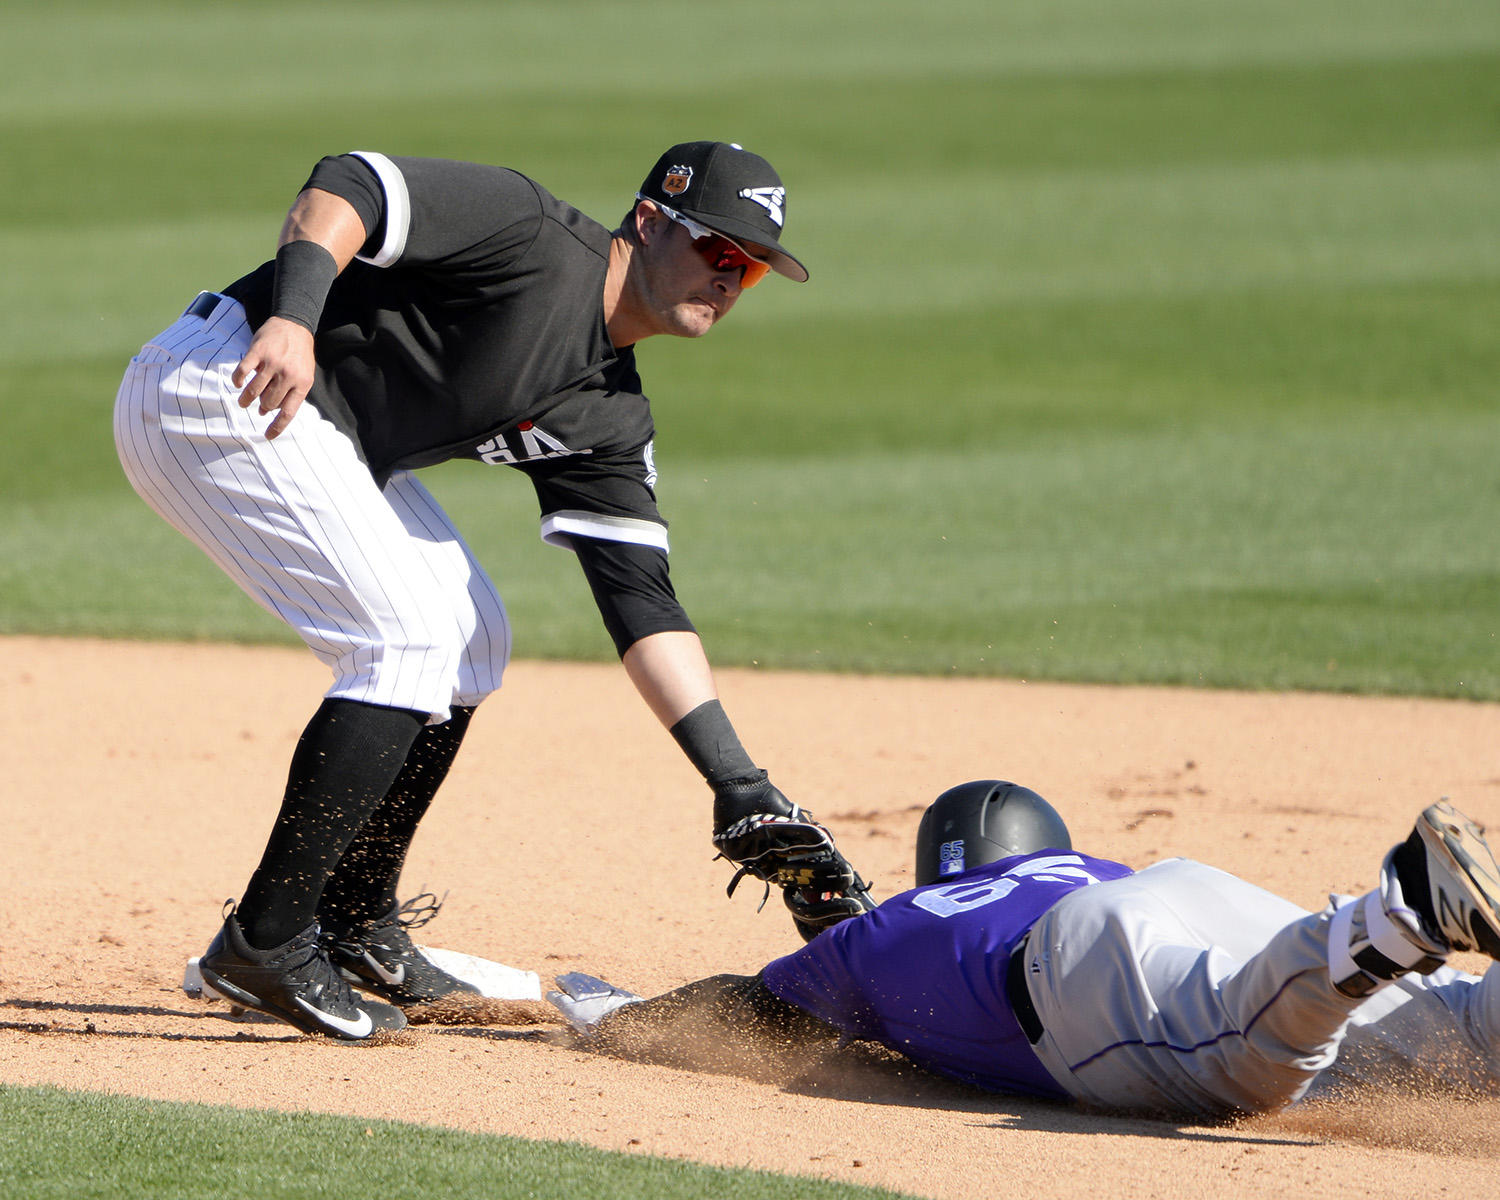 Eddy Alvarez makes a tag at second base during the White Sox's Spring Training camp in Glendale, Ariz. (Ron Vesely/National Baseball Hall of Fame and Museum)